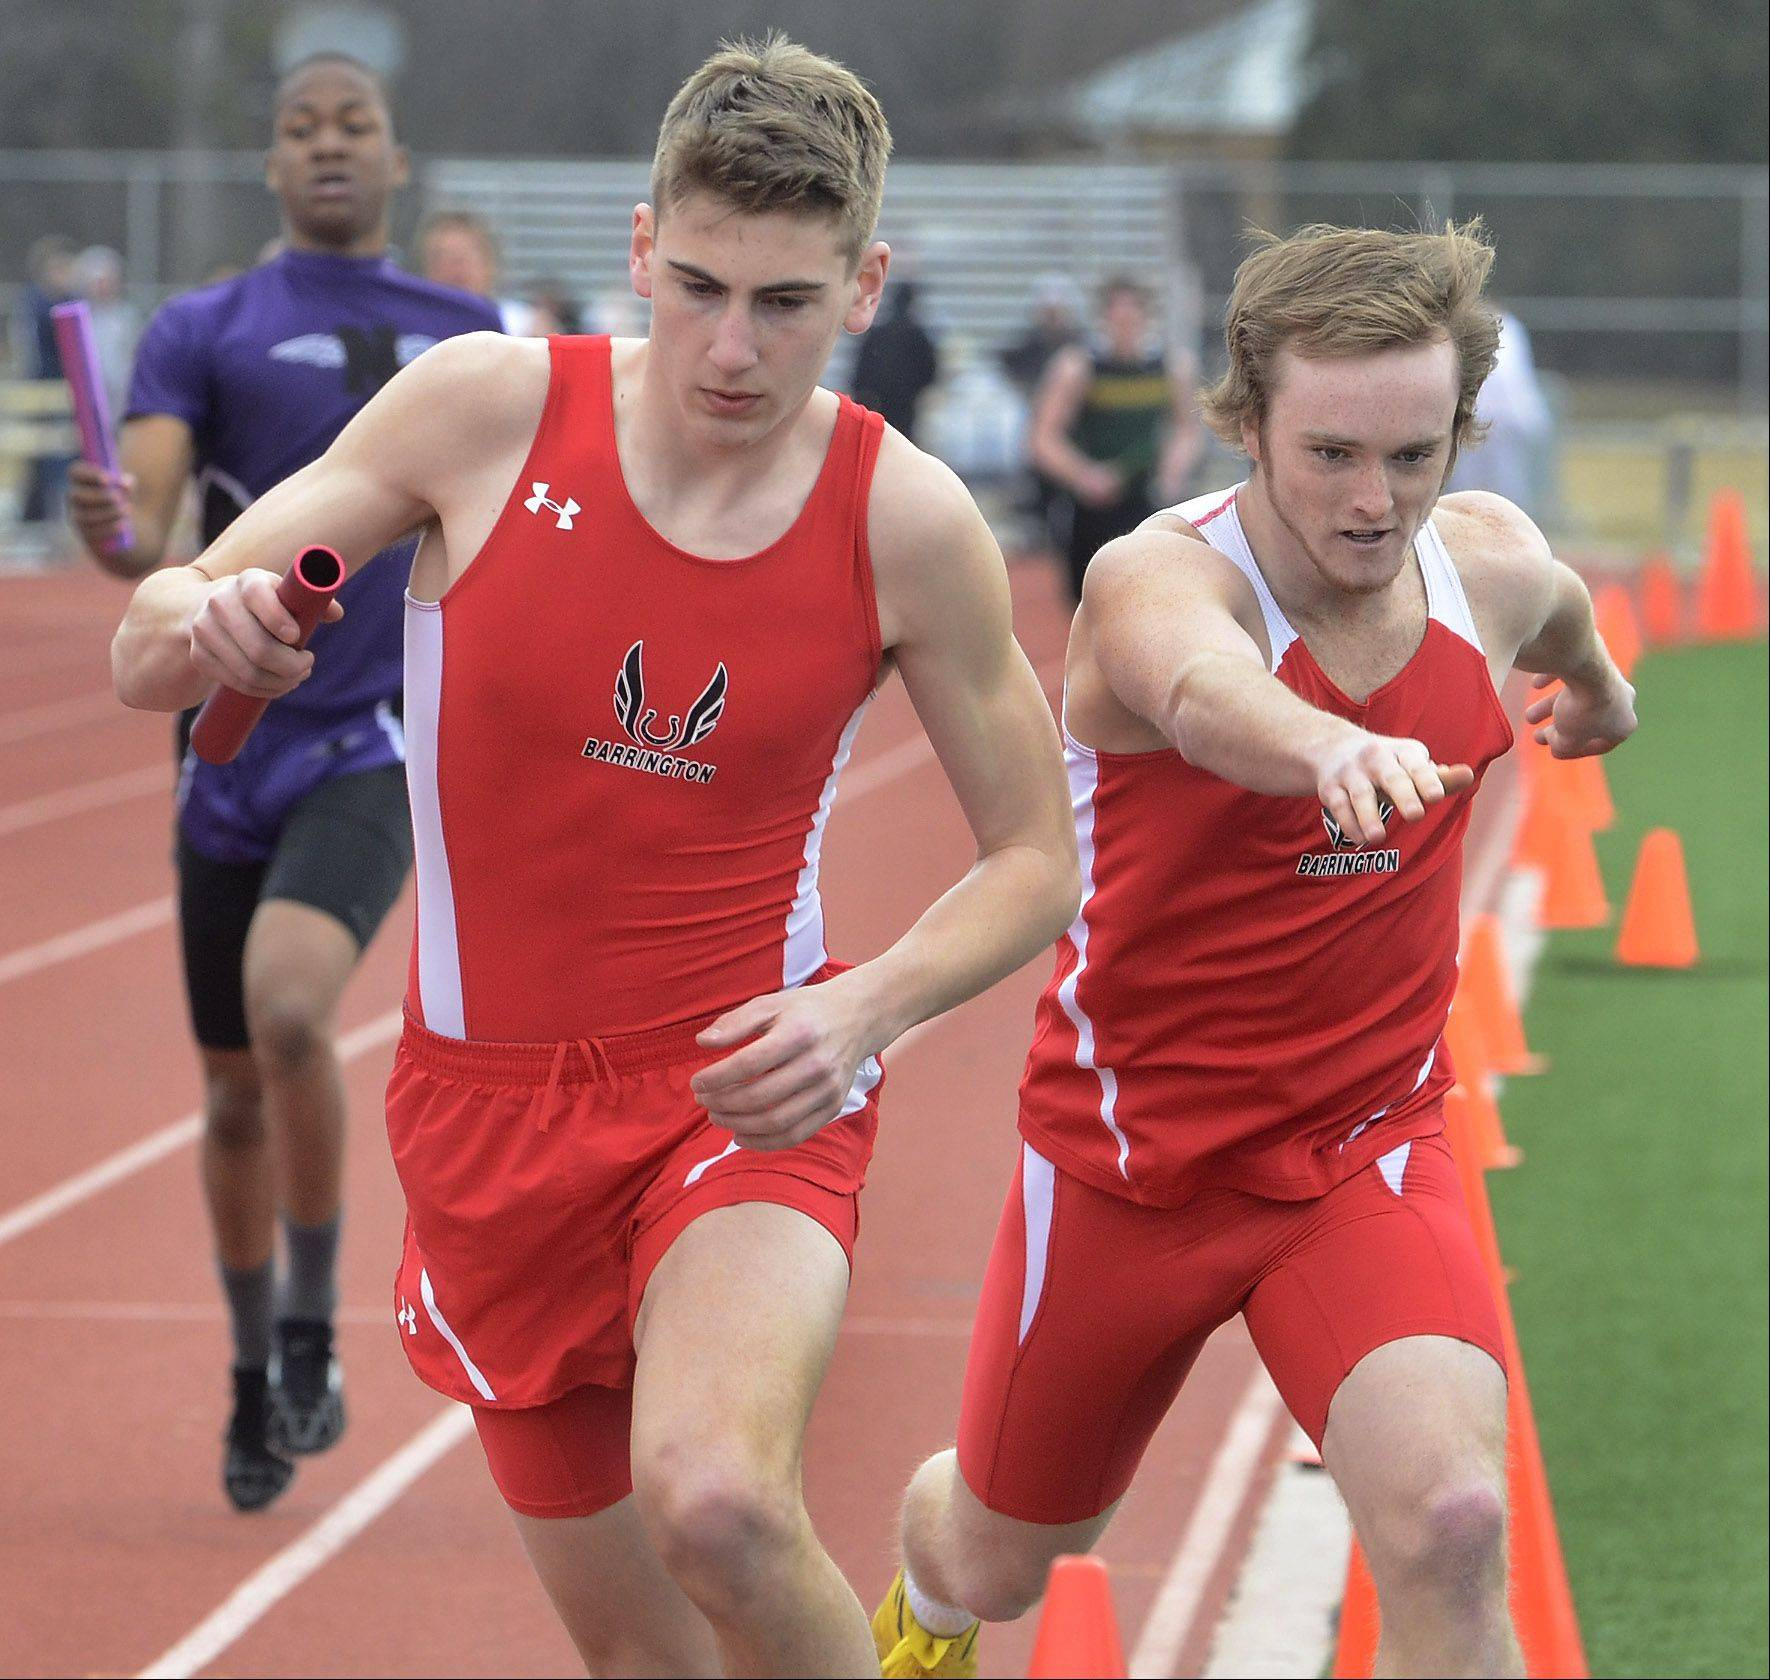 Barrington's Ryan Skelly hands off to Conrad Eiring, foreground, during the 3,200-meter relay at the Prospect Relays on Saturday.